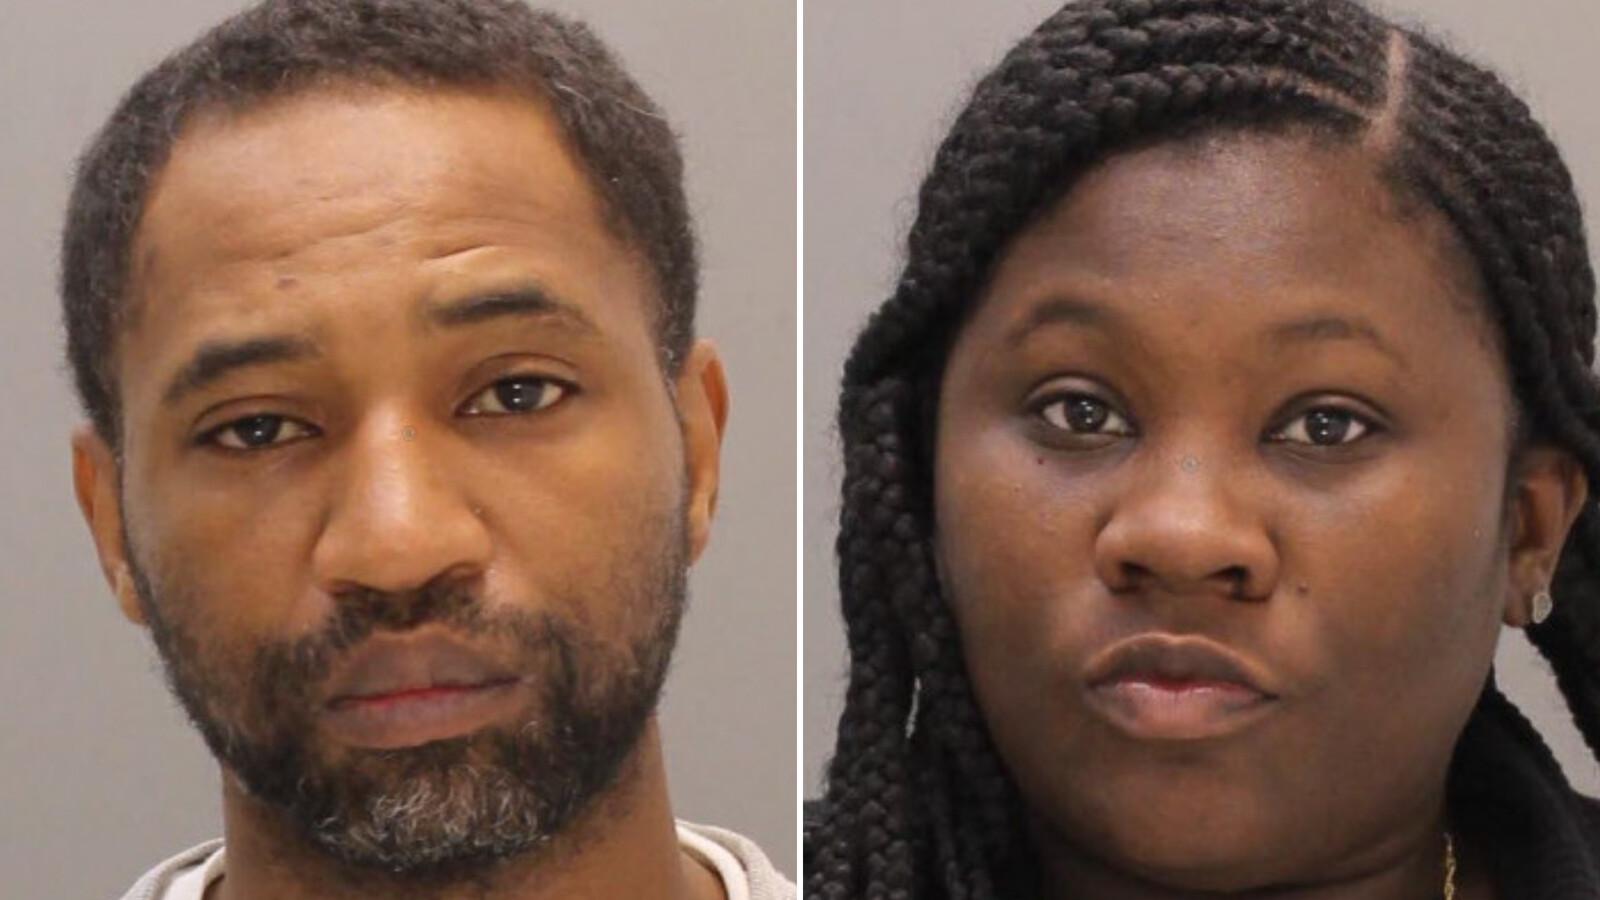 A couple convicted of assaulting a Sesame Place worker after a mask dispute has been sentenced to prison